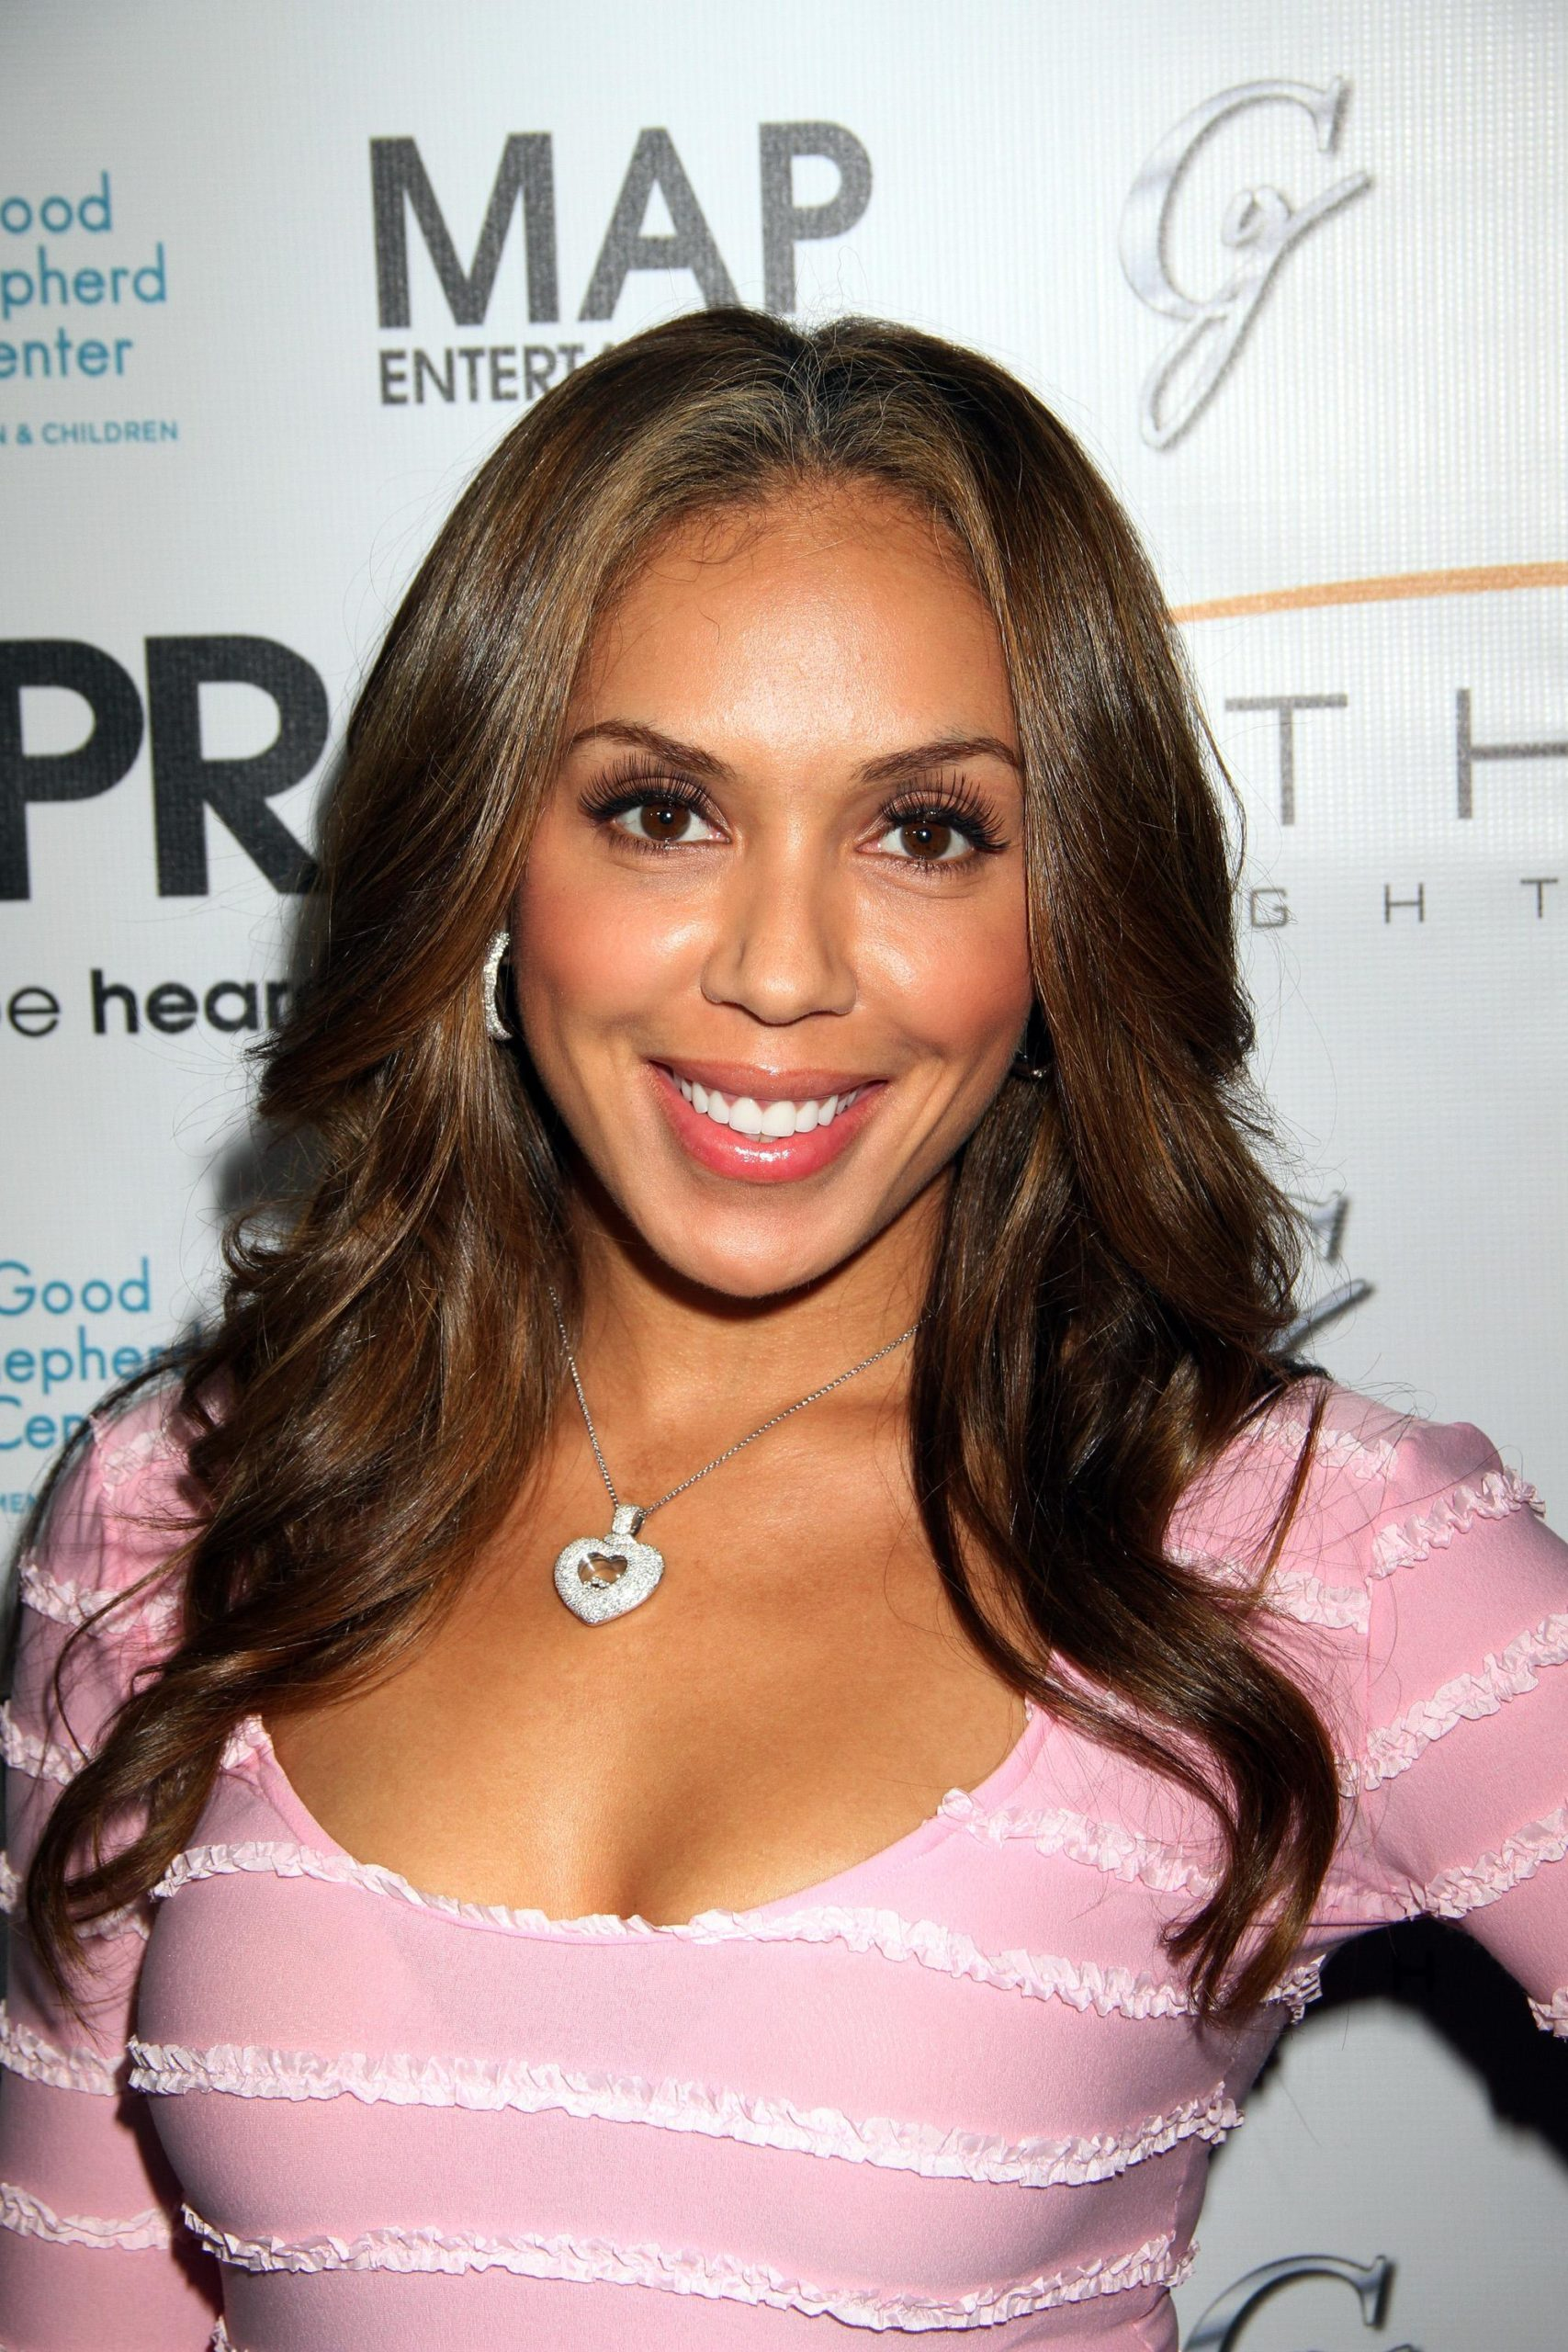 Stephanie Moseley VH1 Star Murdered at the Hands of Rapper Husband, While Face Timing Floyd Mayweather!